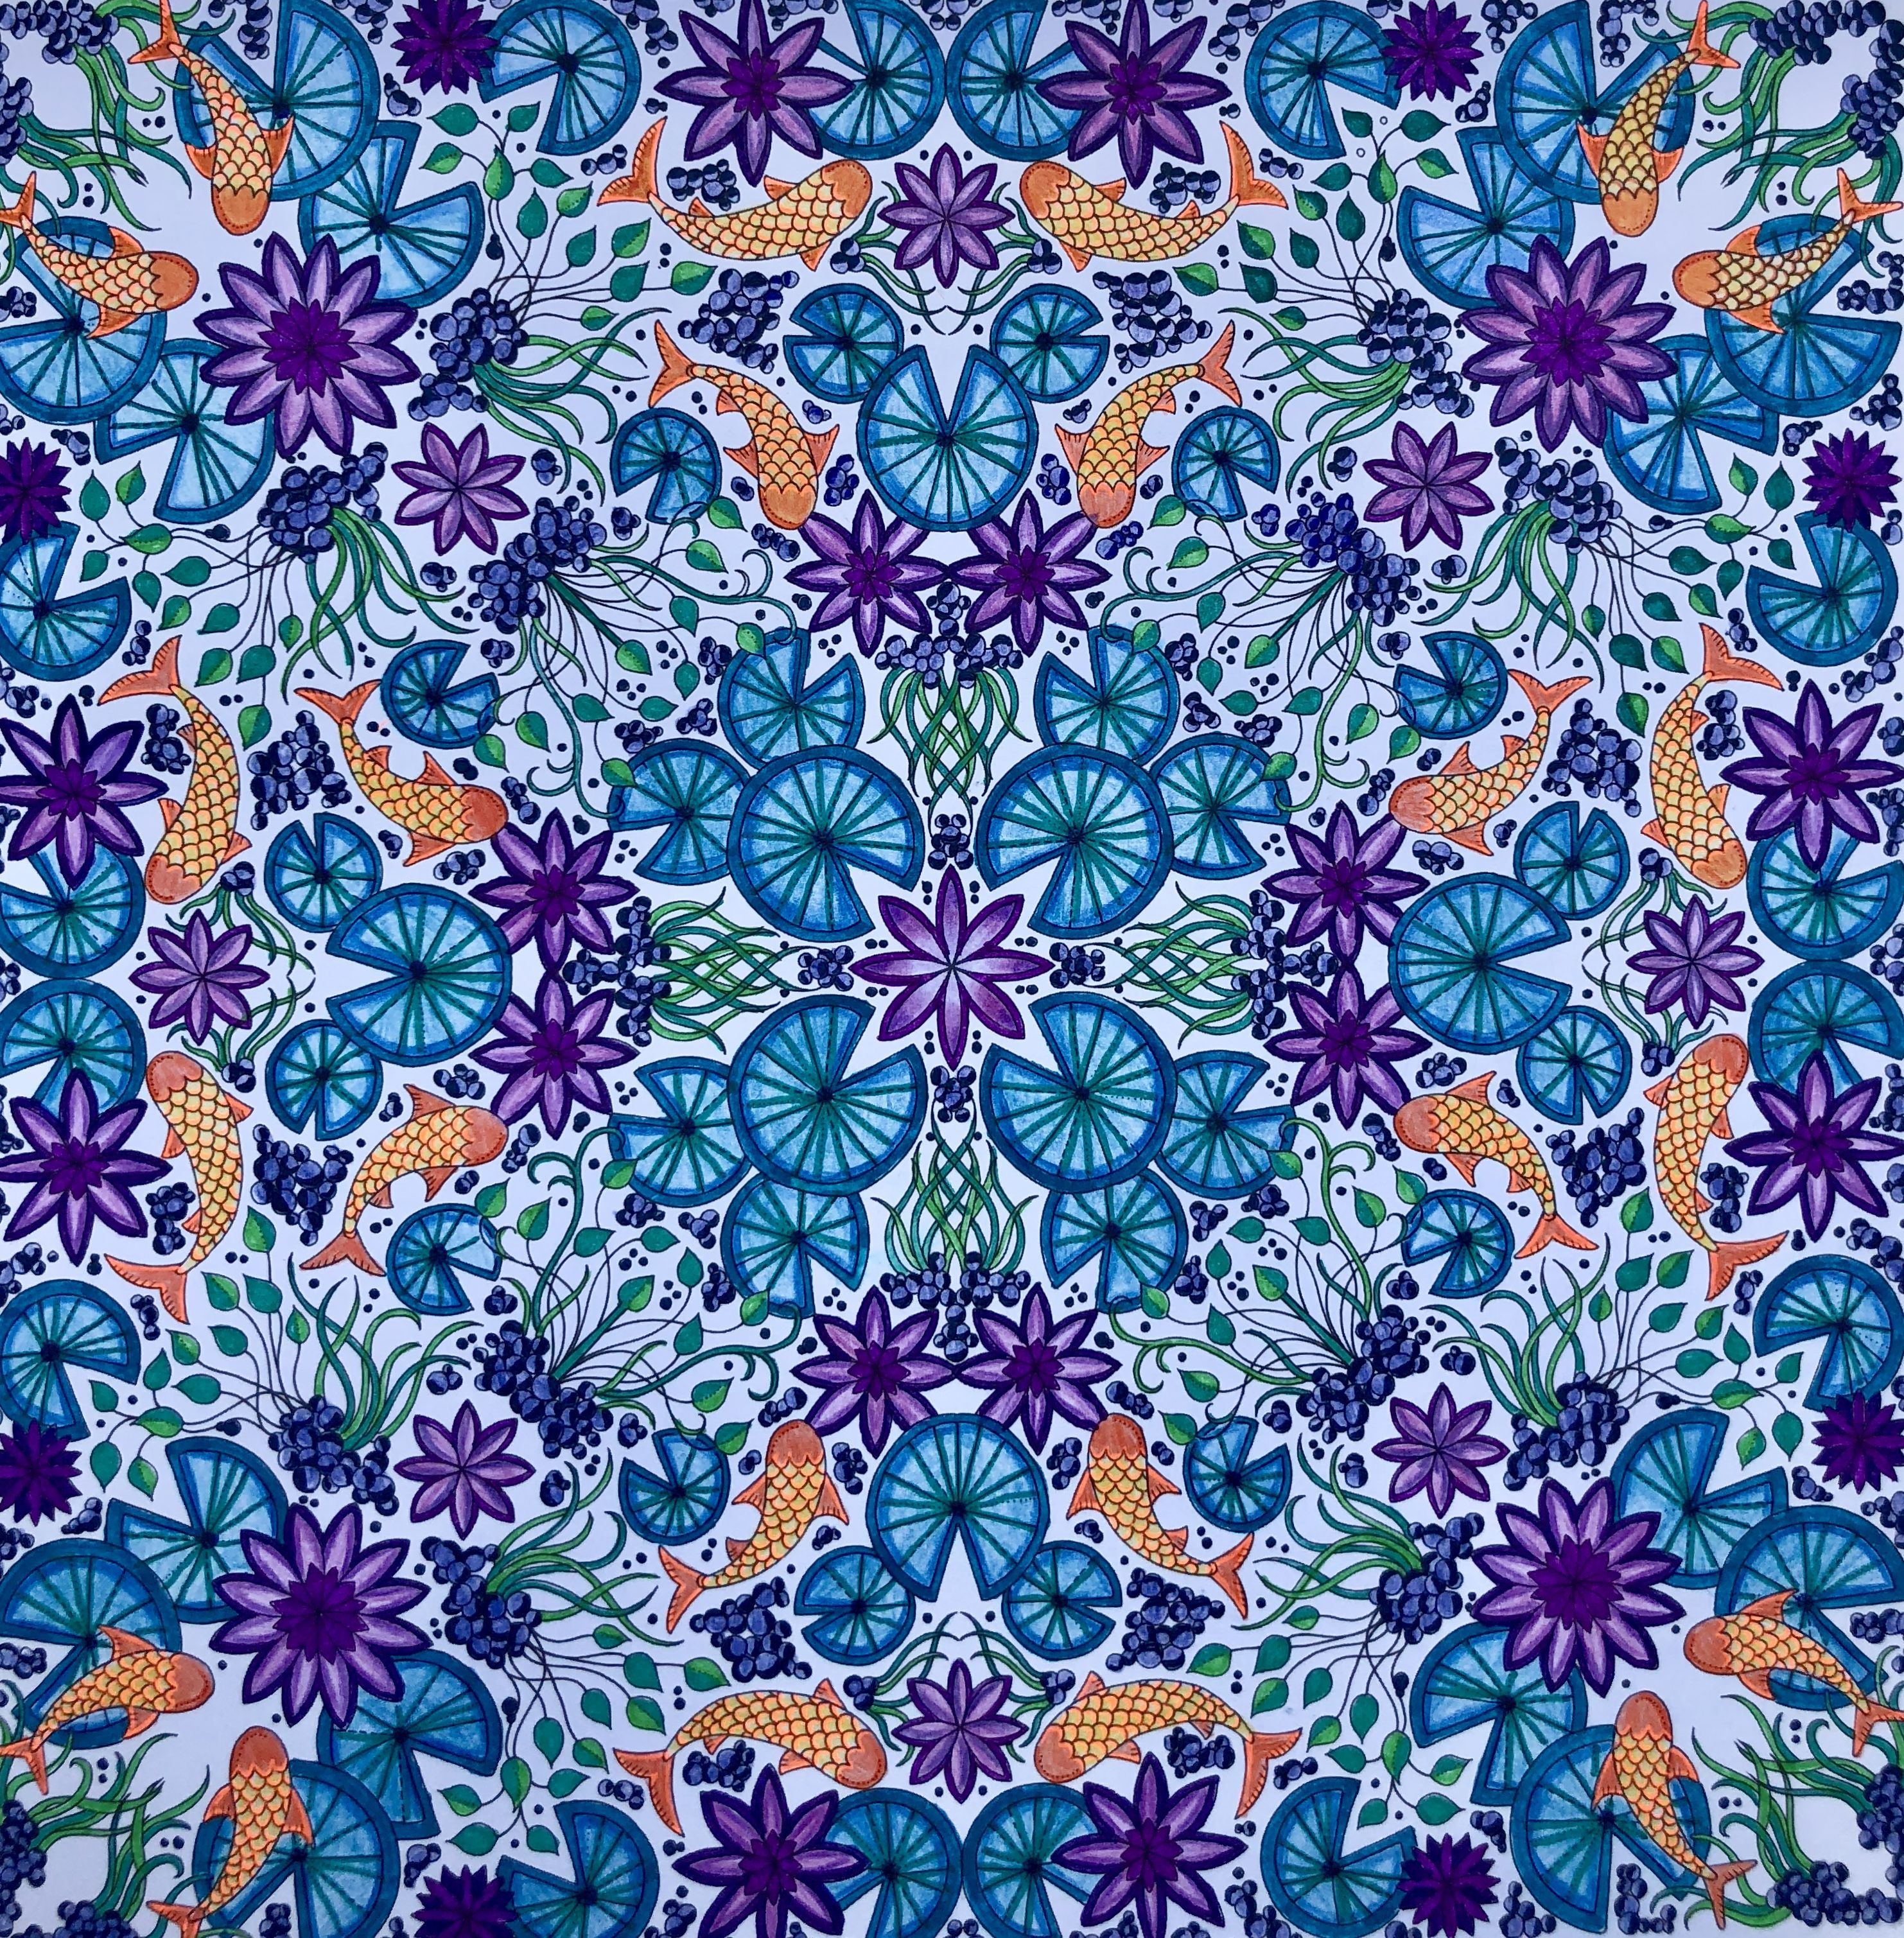 Pin by Ashley Lasam on Coloring Tapestry, Decor, Color